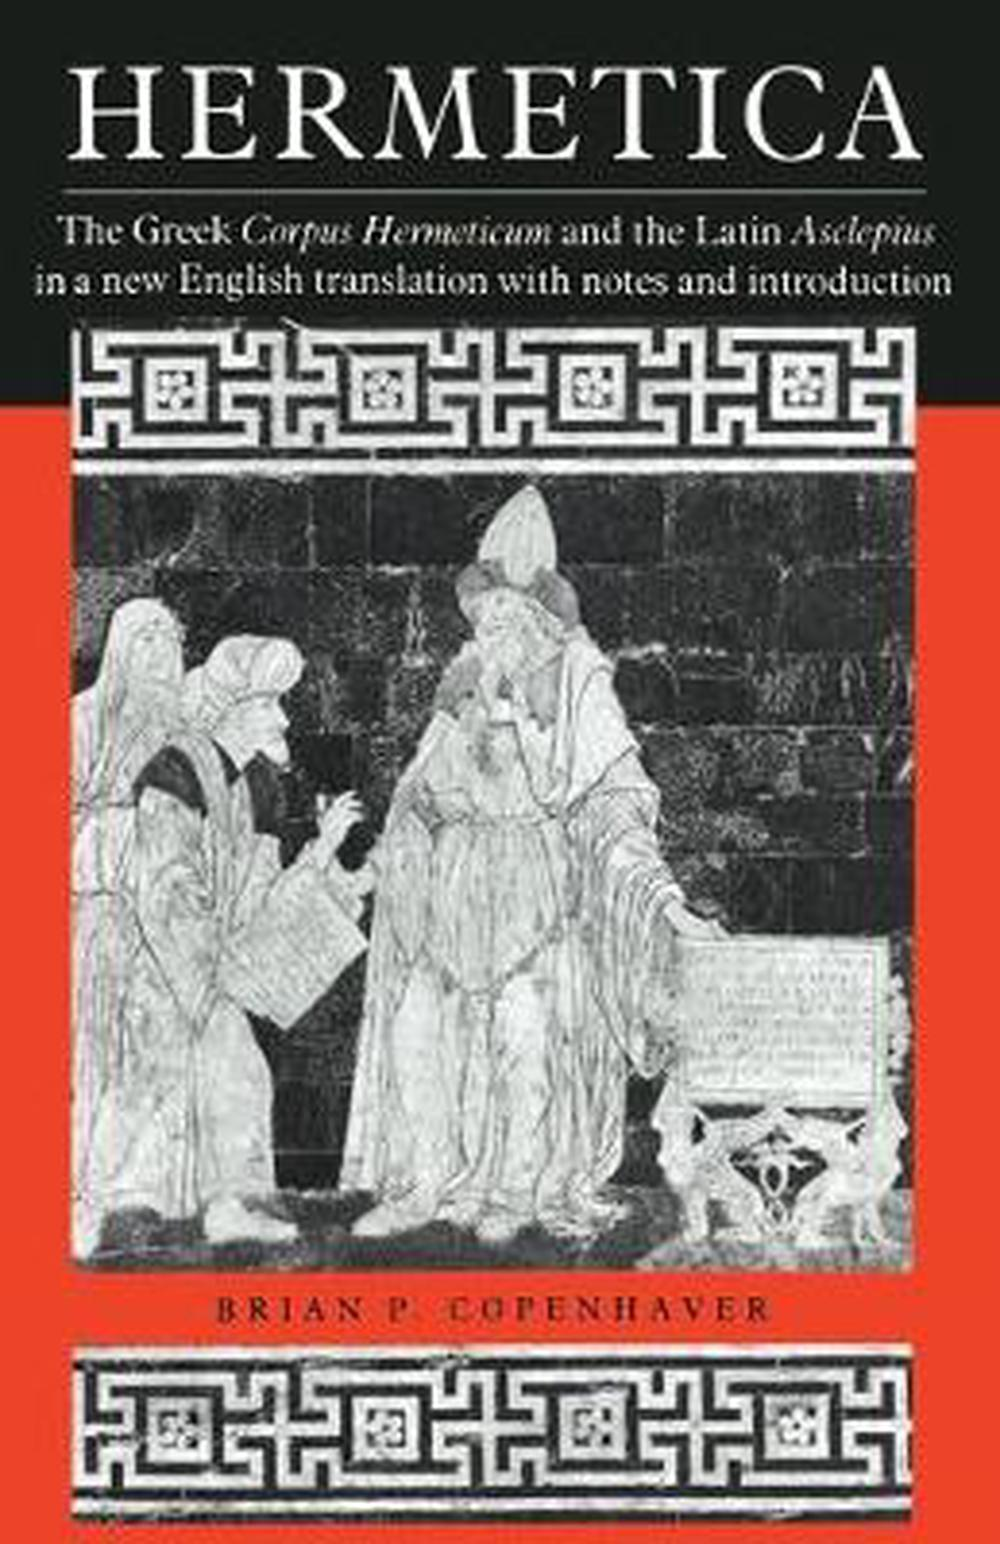 Hermetica: The Greek Corpus Hermeticum and the Latin Asclepius in a New English Translation, with Notes and Introduction by Trismegistus Hermes, ISBN: 9780521425438